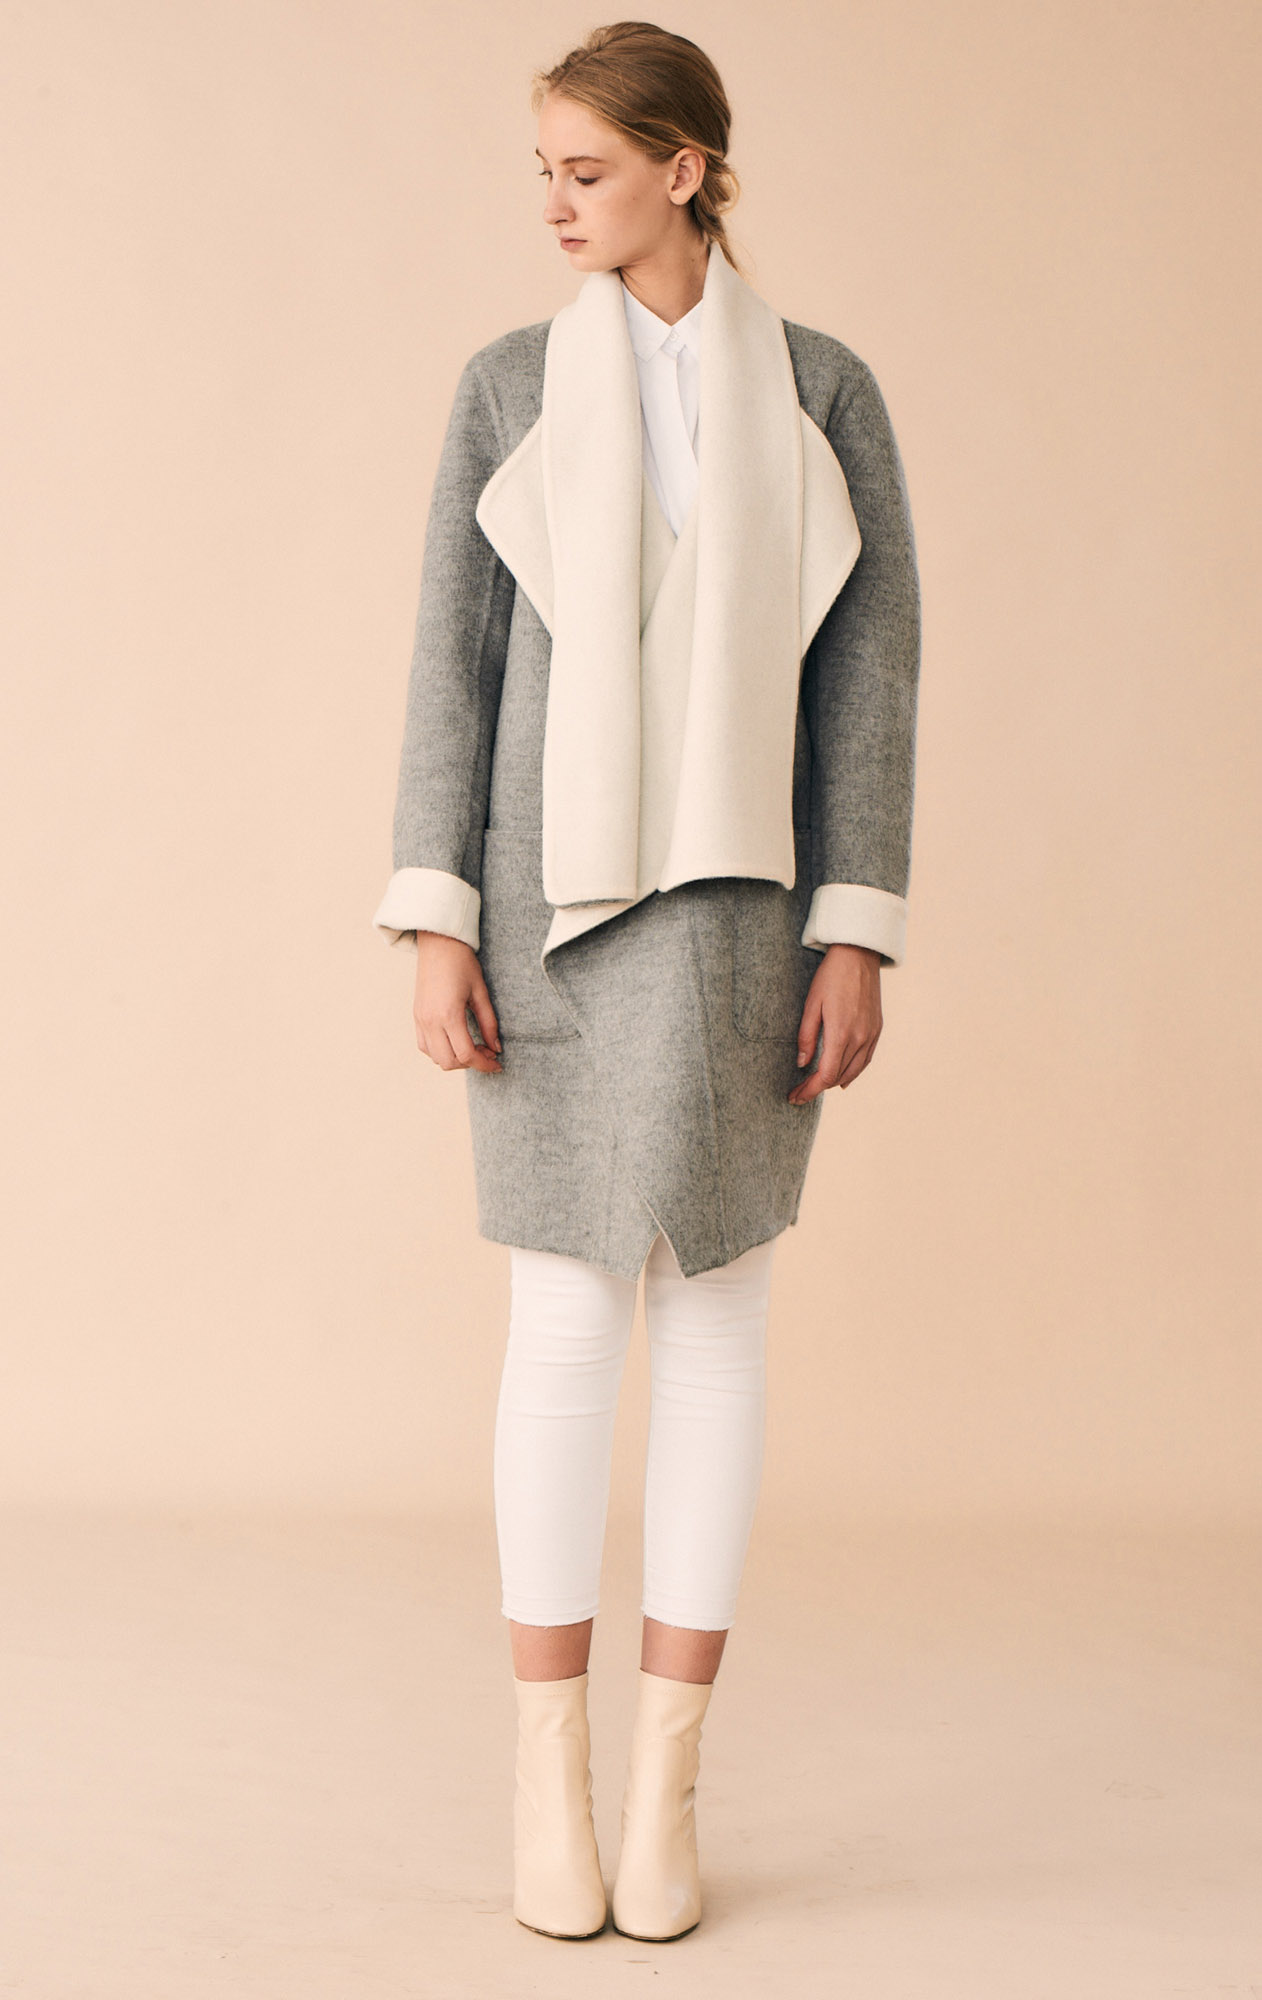 JACKET LUCIA AT-325   Colors:  double face   gray/white   Sizes: XS, S, M, L, XL